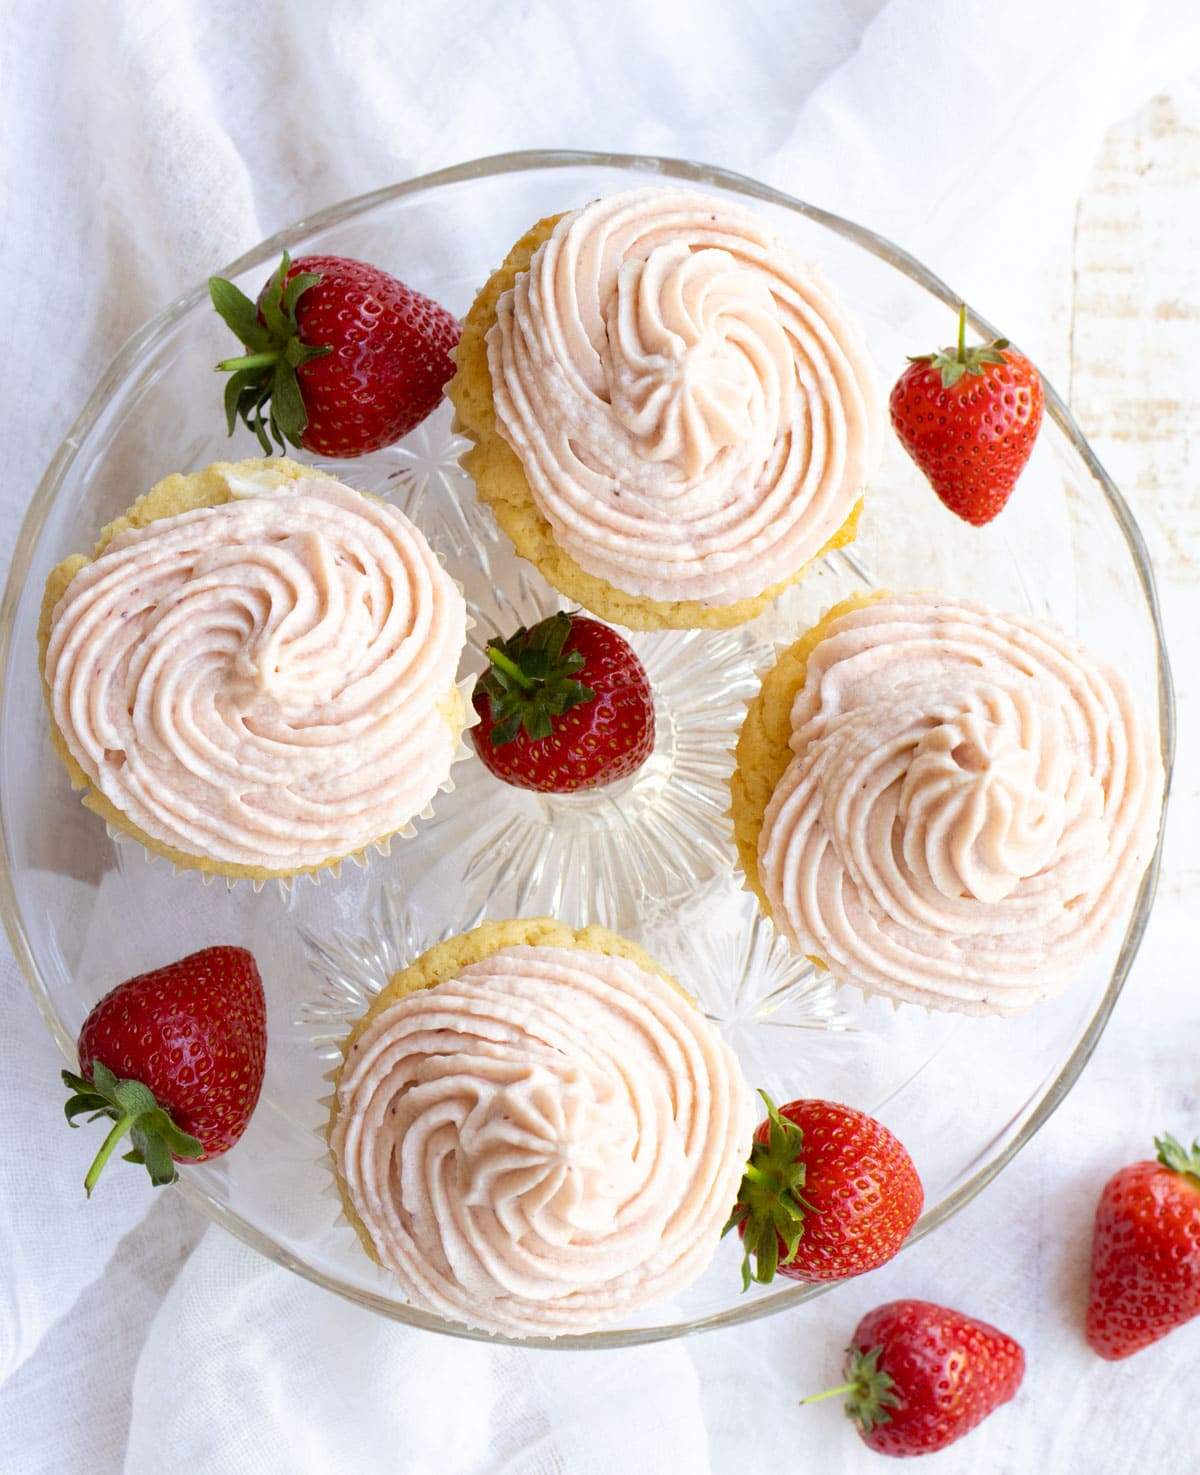 4 cupcakes with strawberry buttercream frosting on a cake stand with strawberries